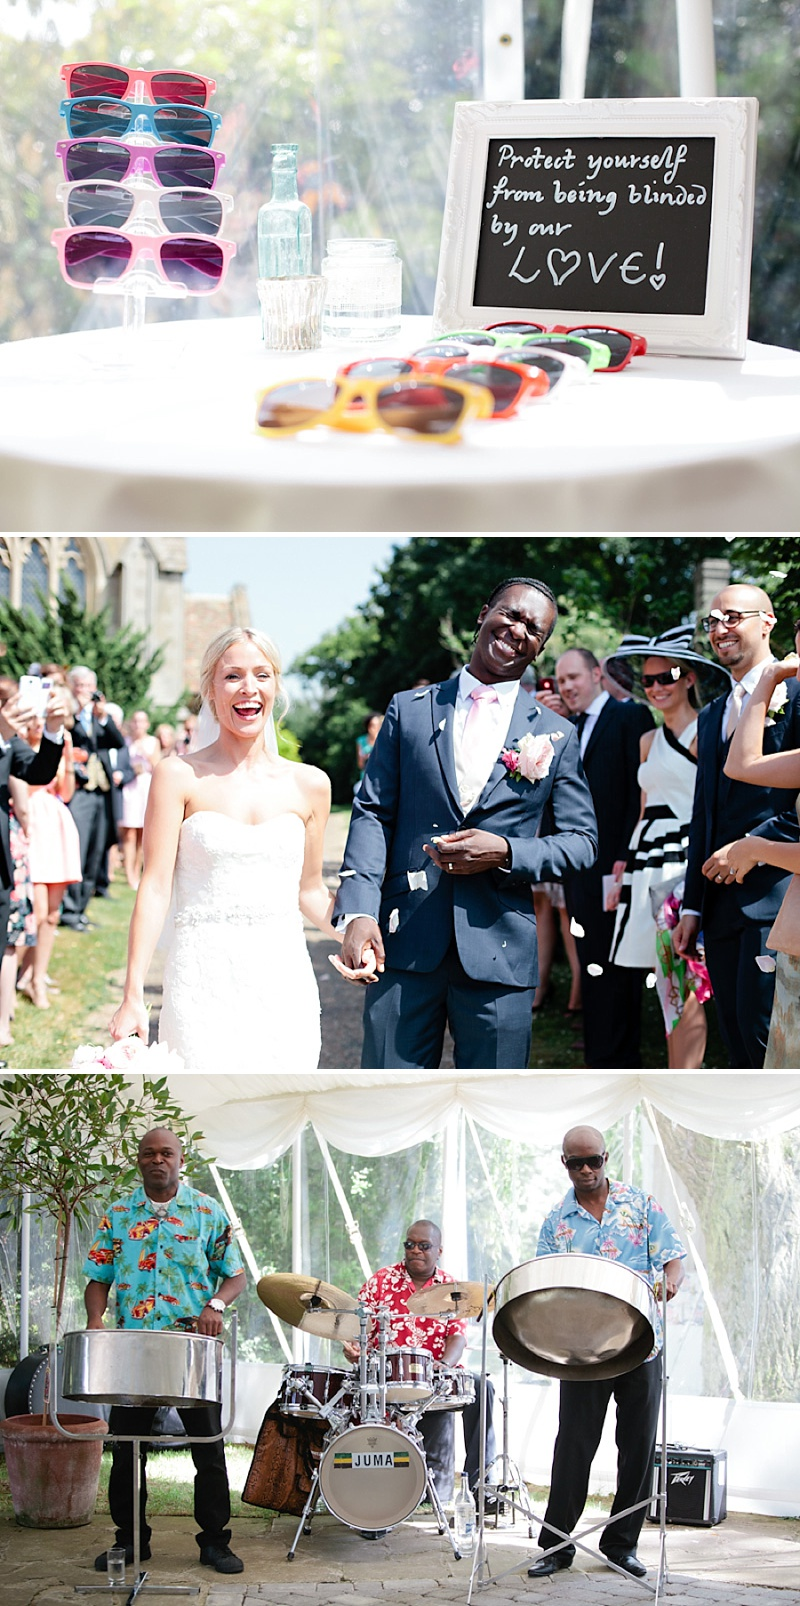 Elegant Church Wedding In Cambridge, Reception At Rectory Farm, Bride In Lace Gown by Benjamin Roberts with Pink Peony Bouquet, Traditional Nigerian Dress, Images by Millie & Belle_0008